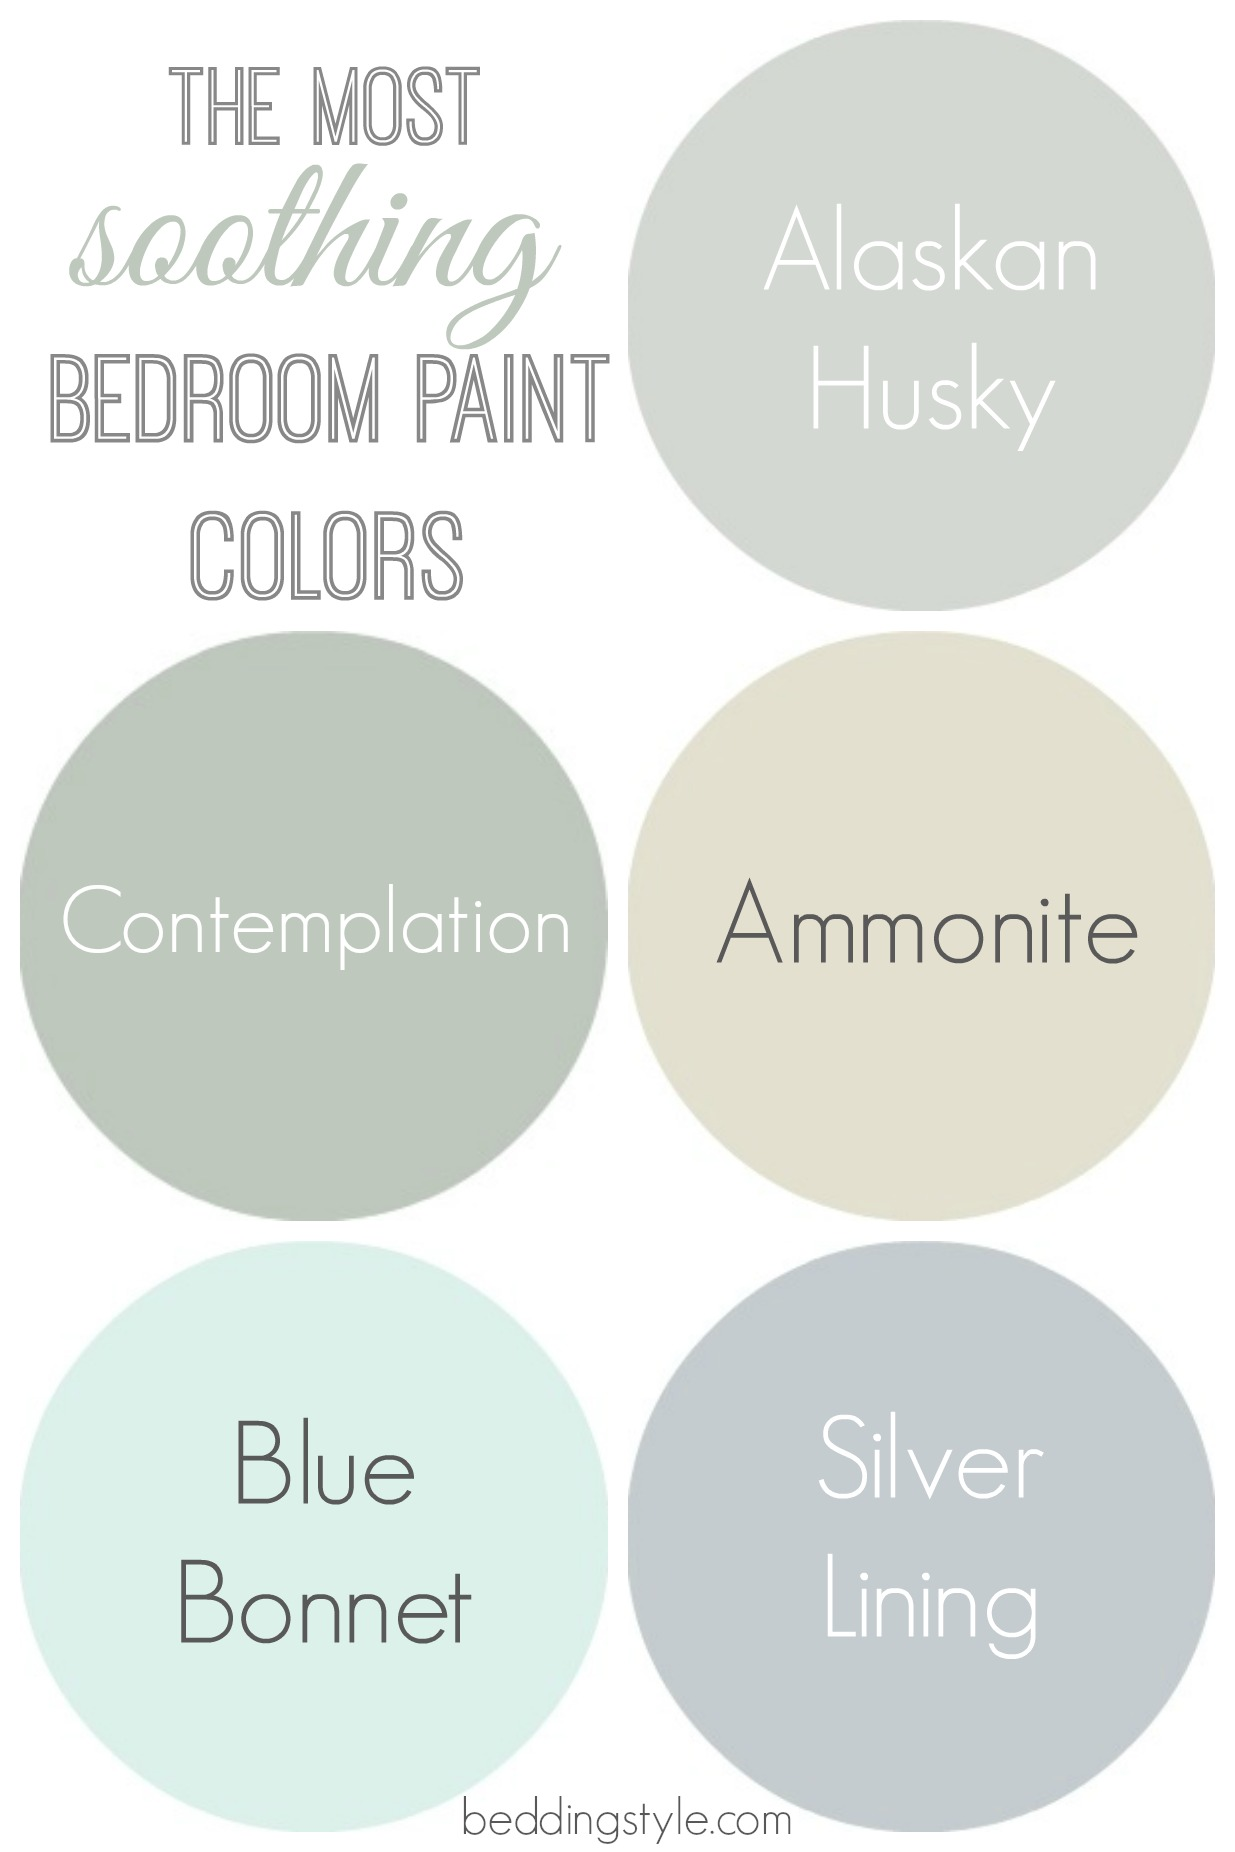 How to decide on bedroom paint colors from - Most popular bedroom paint colors ...